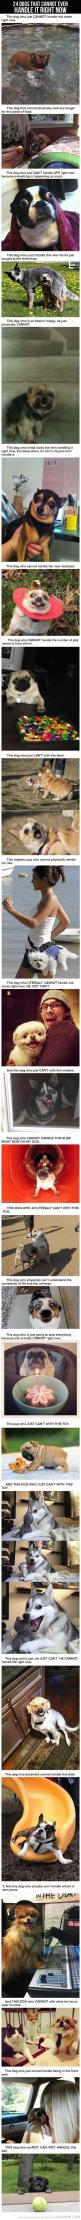 24 Dogs That Cannot Handle It Right Now...and neither can I. lol: Laughing So Hard, Giggle, Cant Handle, So Funny, Animal